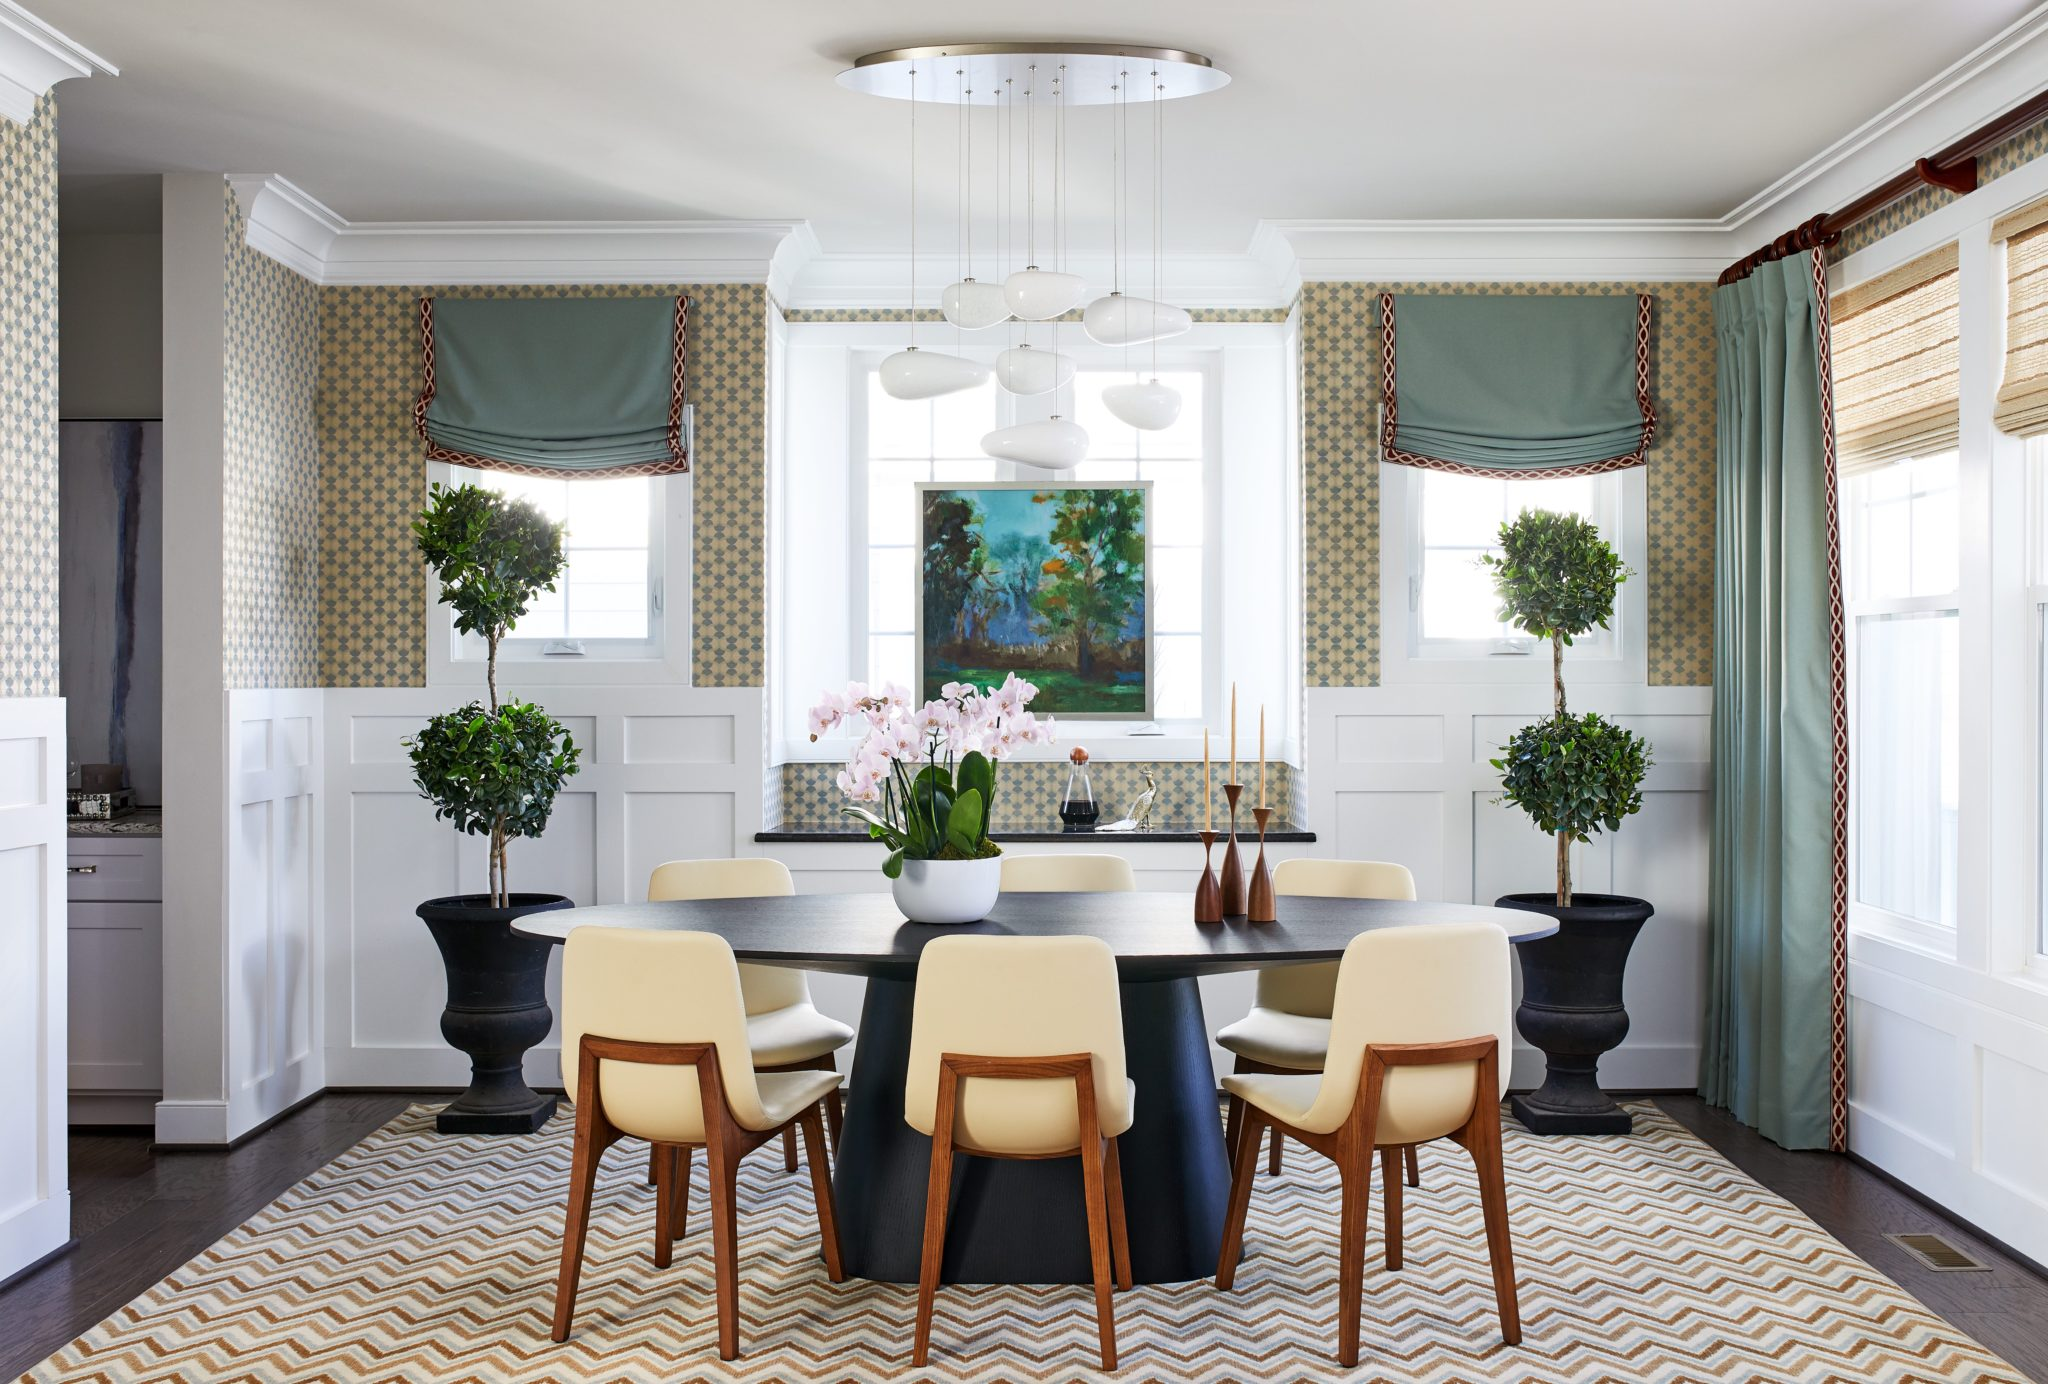 Wainscoting, grasscloth chandelier geometric zig zag rug walls blue drapes shade by Dane Austin Design